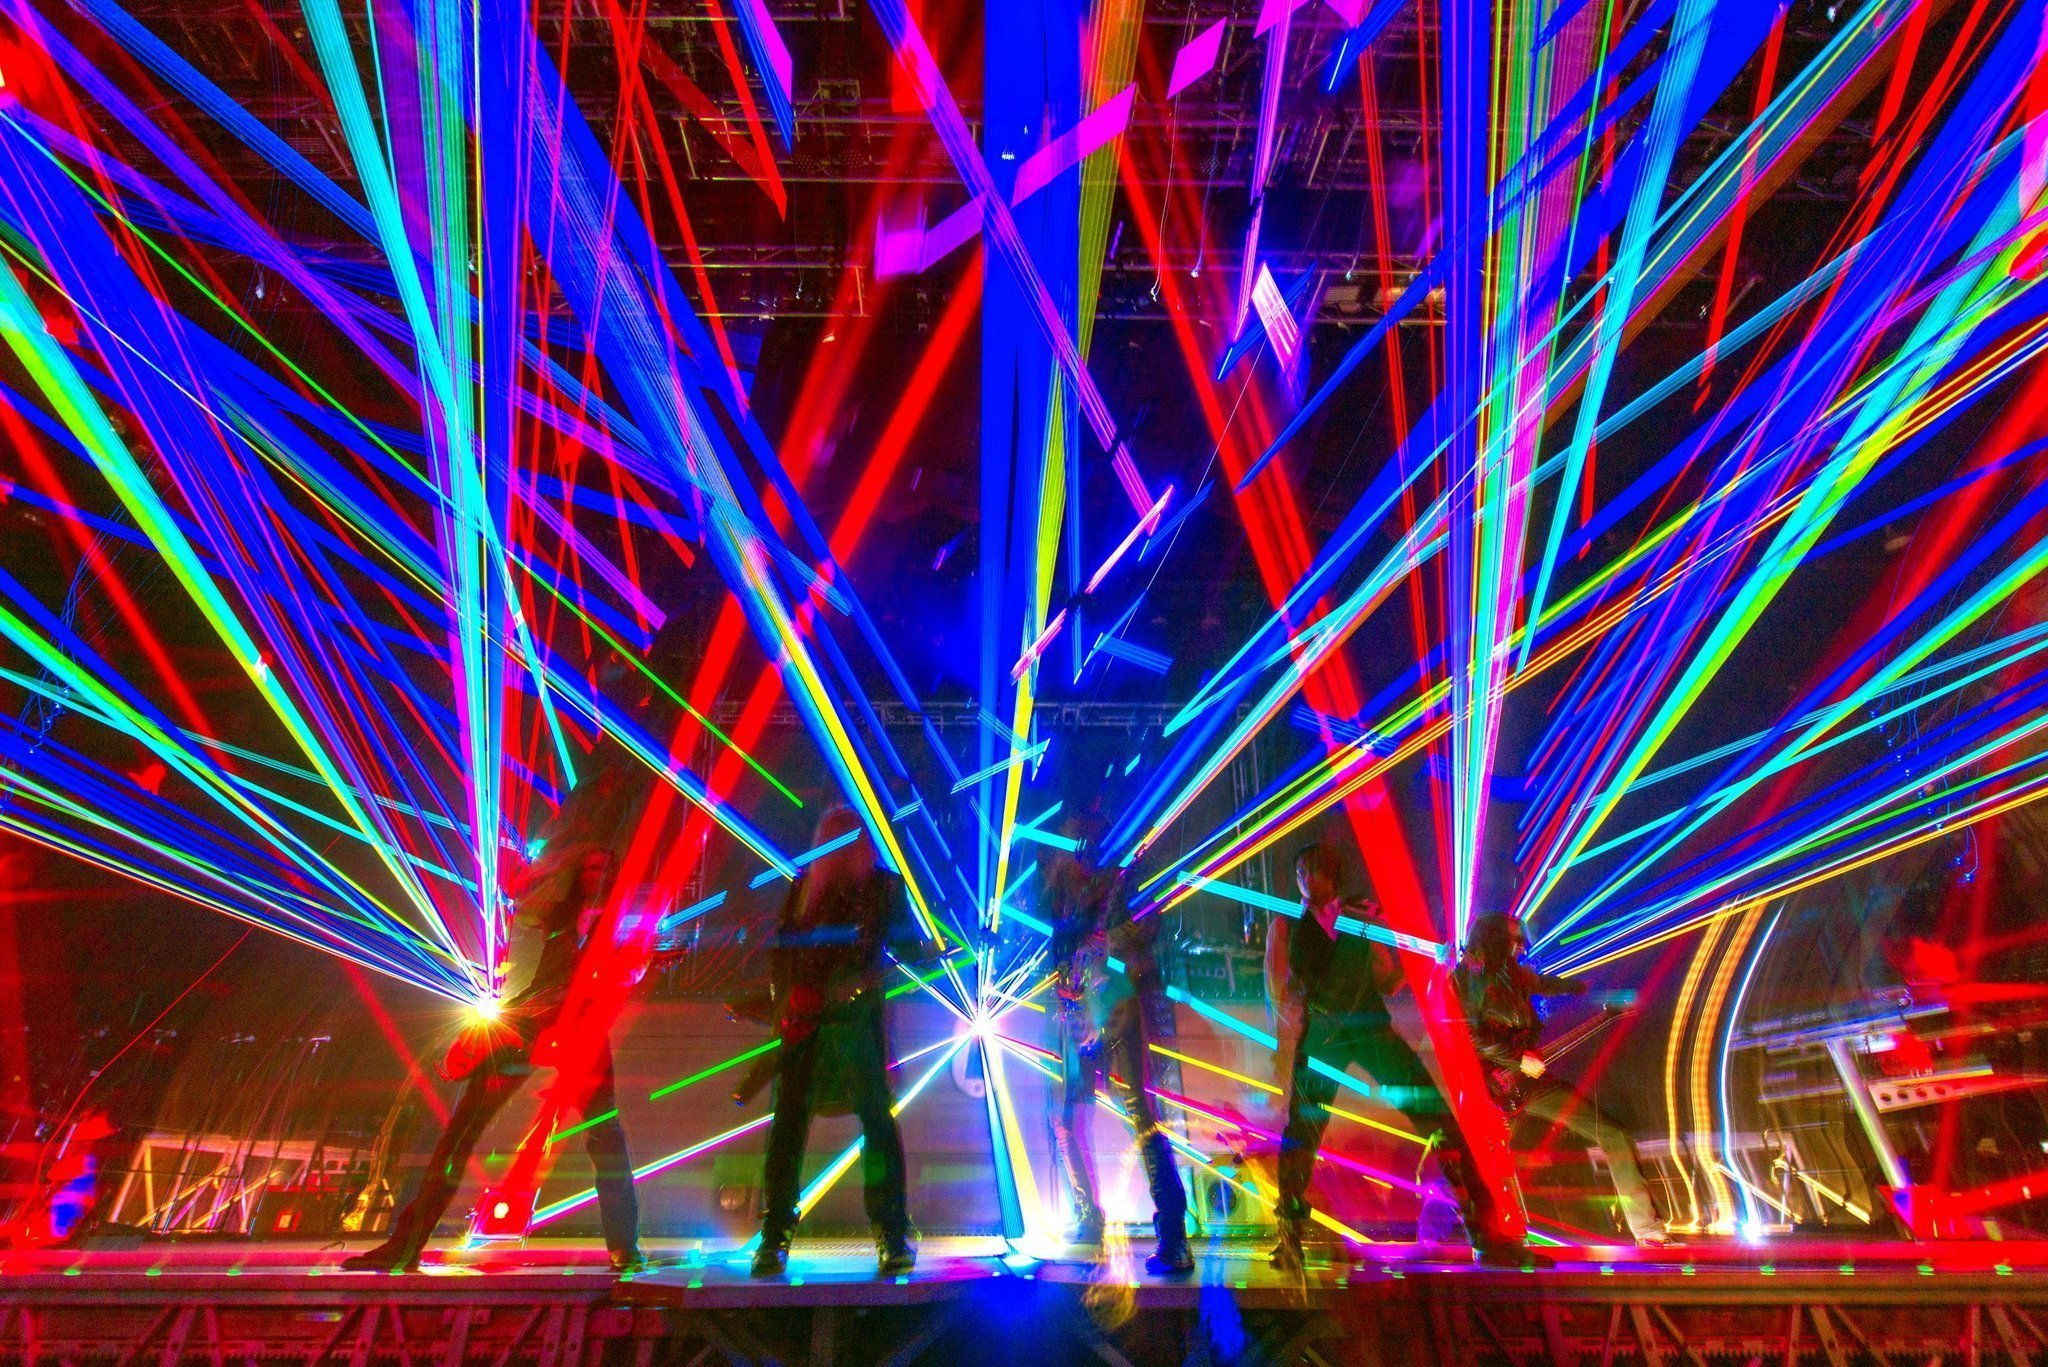 Trans-Siberian Orchestra: Spectacle or spectacular? - The San Diego Union-Tribune